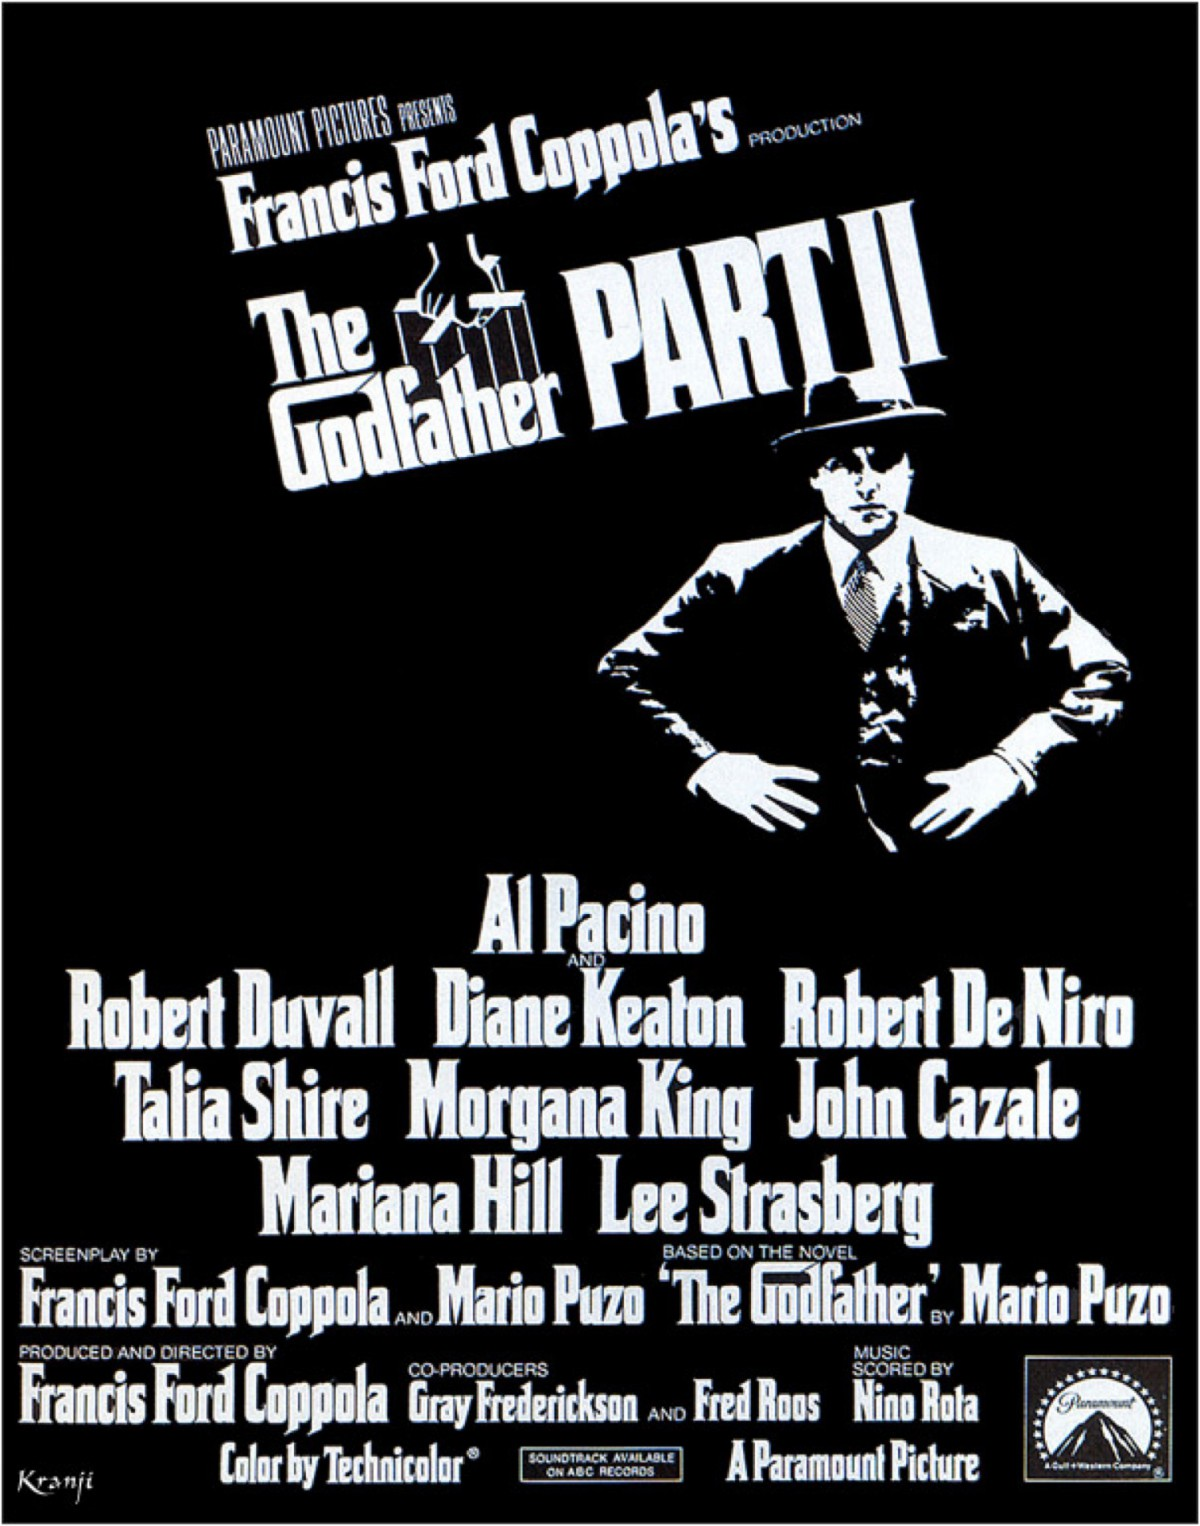 77. The Godfather - Part II (1974)